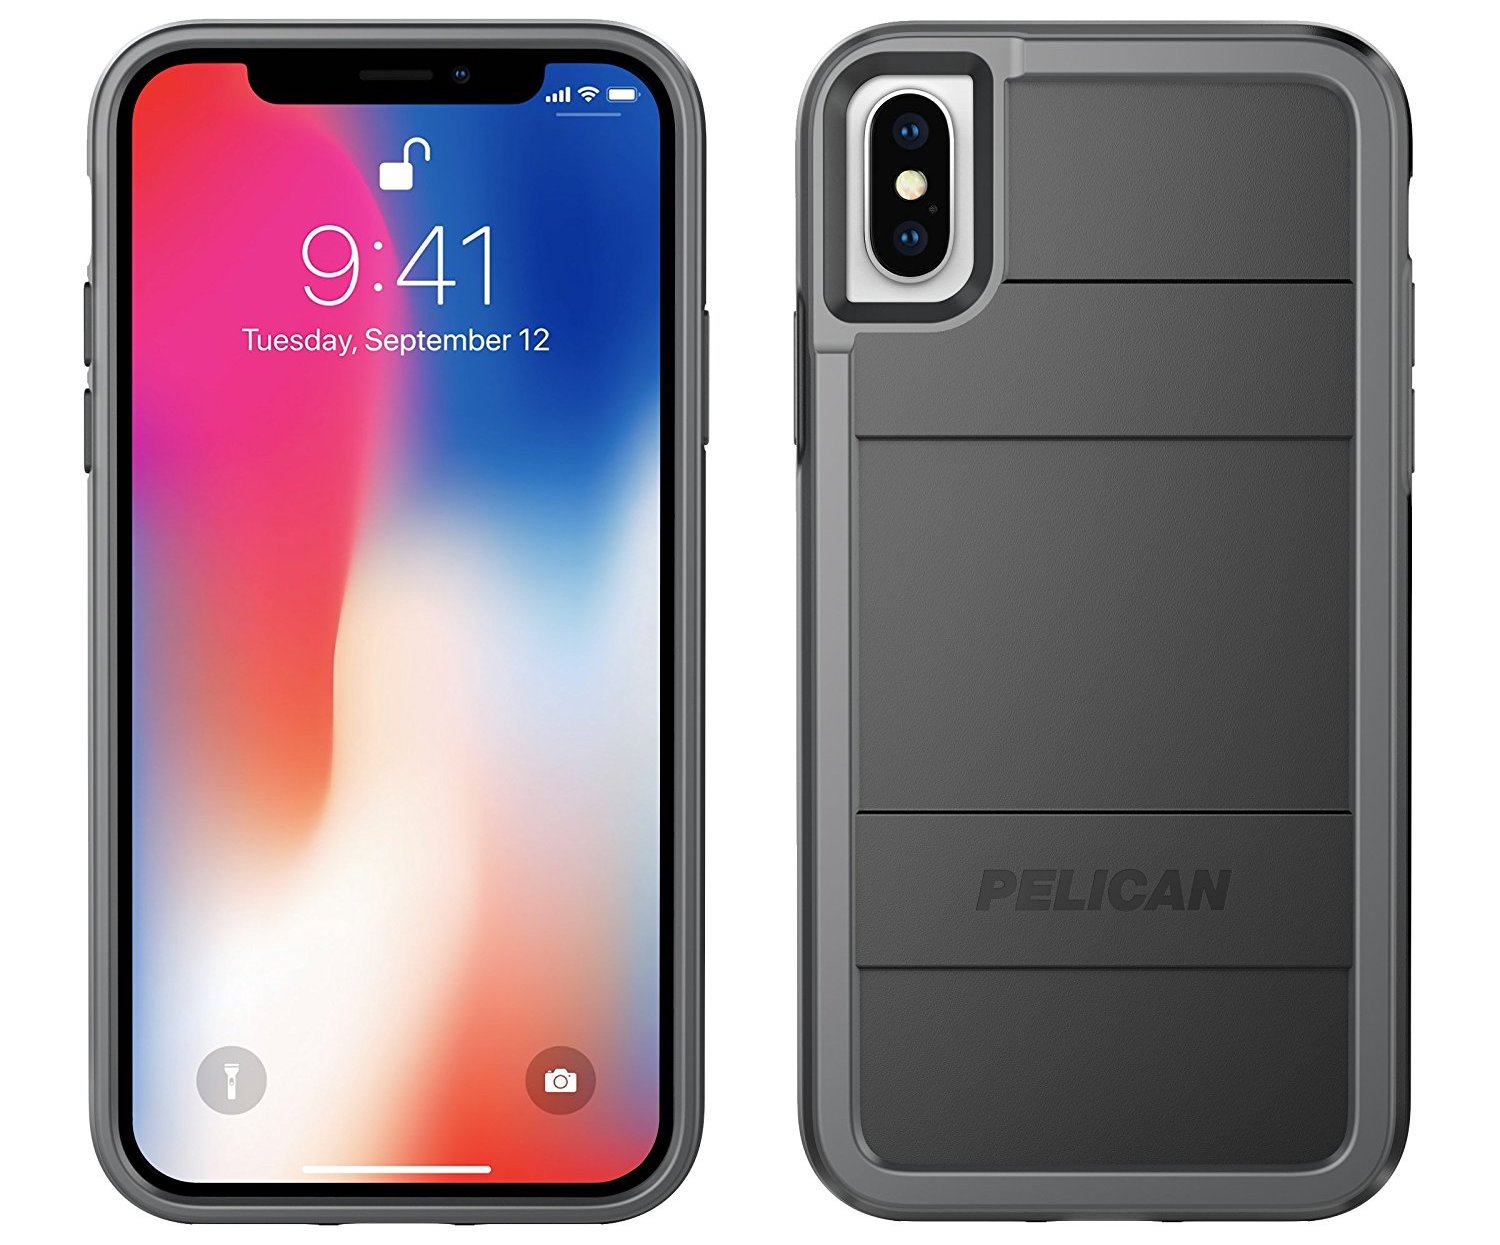 Best Iphone X Cases Folios Covers And Screen Protectors 9to5mac 2in1 Gravity Case Full Cover Tempered Glass For 6 Plus Lifeproof Fr 90 Coming Soon